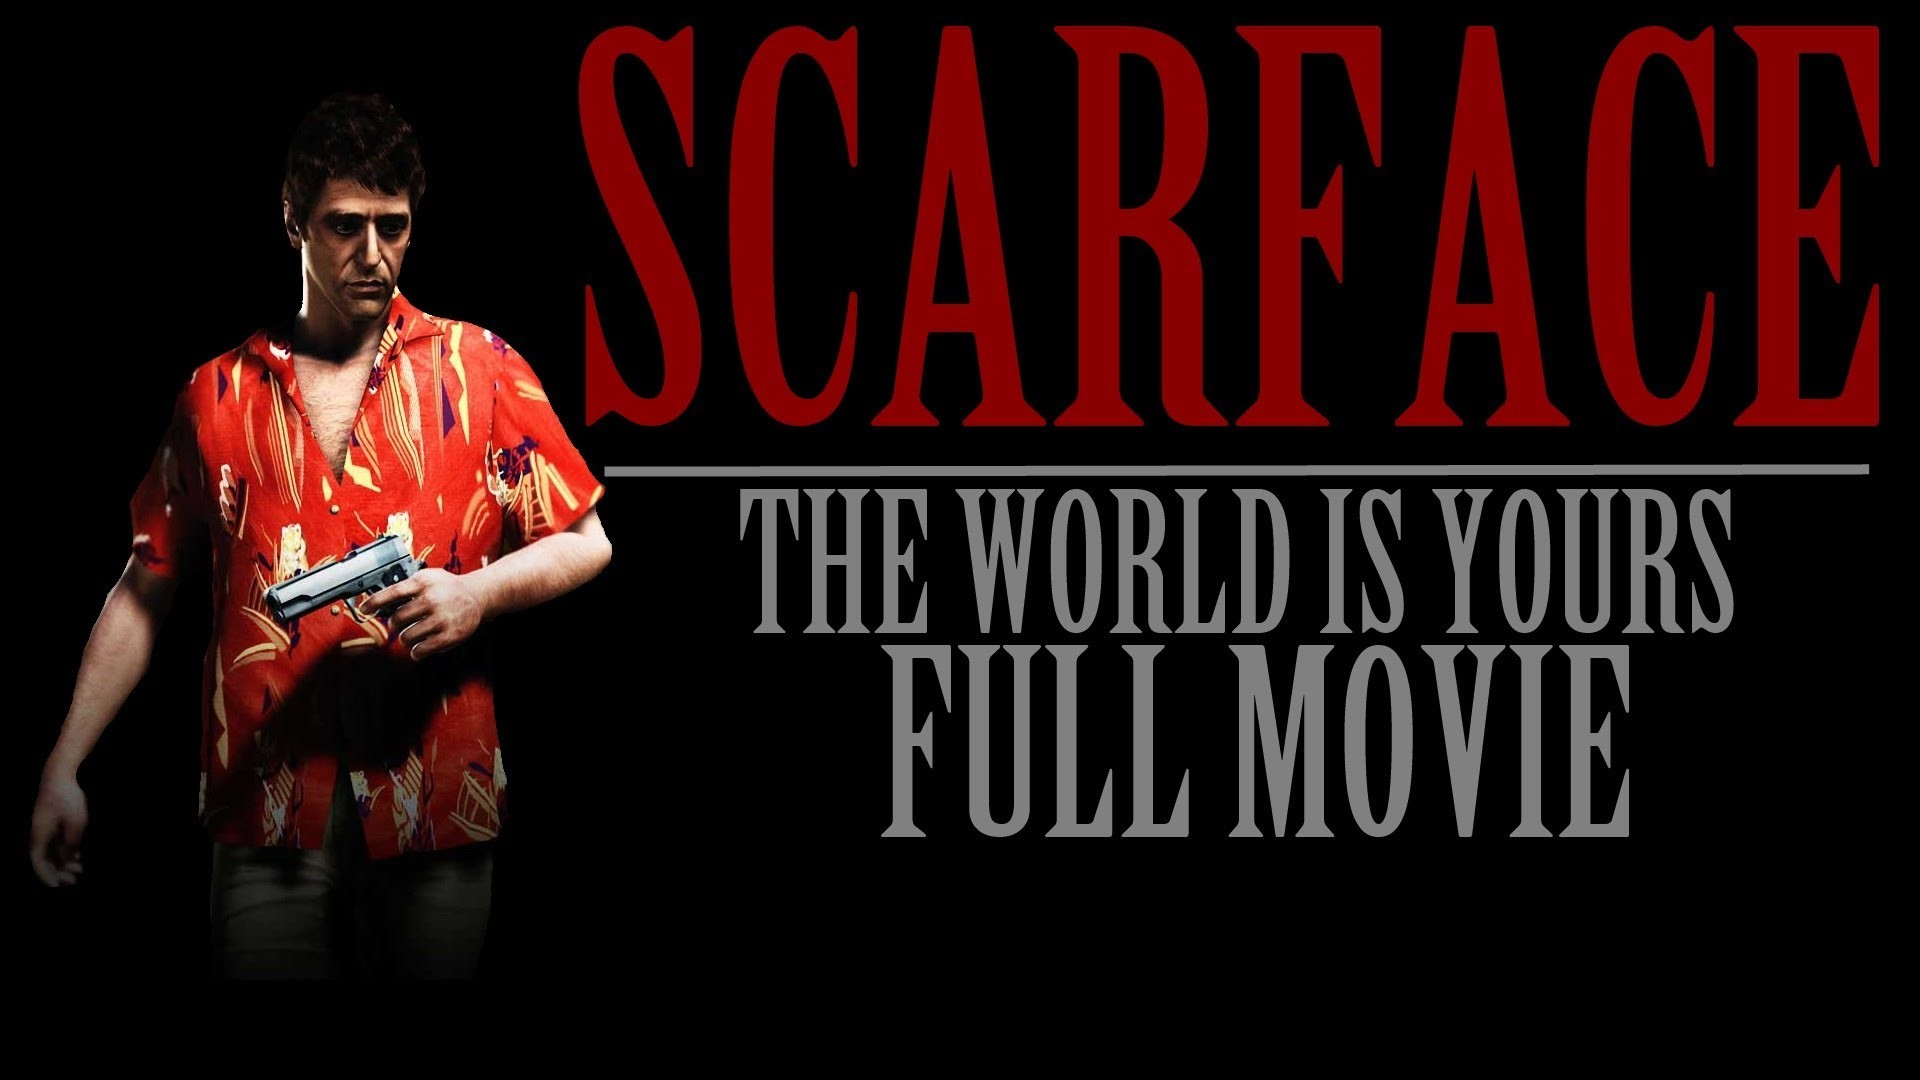 Scarface The World Is Yours: Full Movie (All Game Cutscenes) HD – YouTube